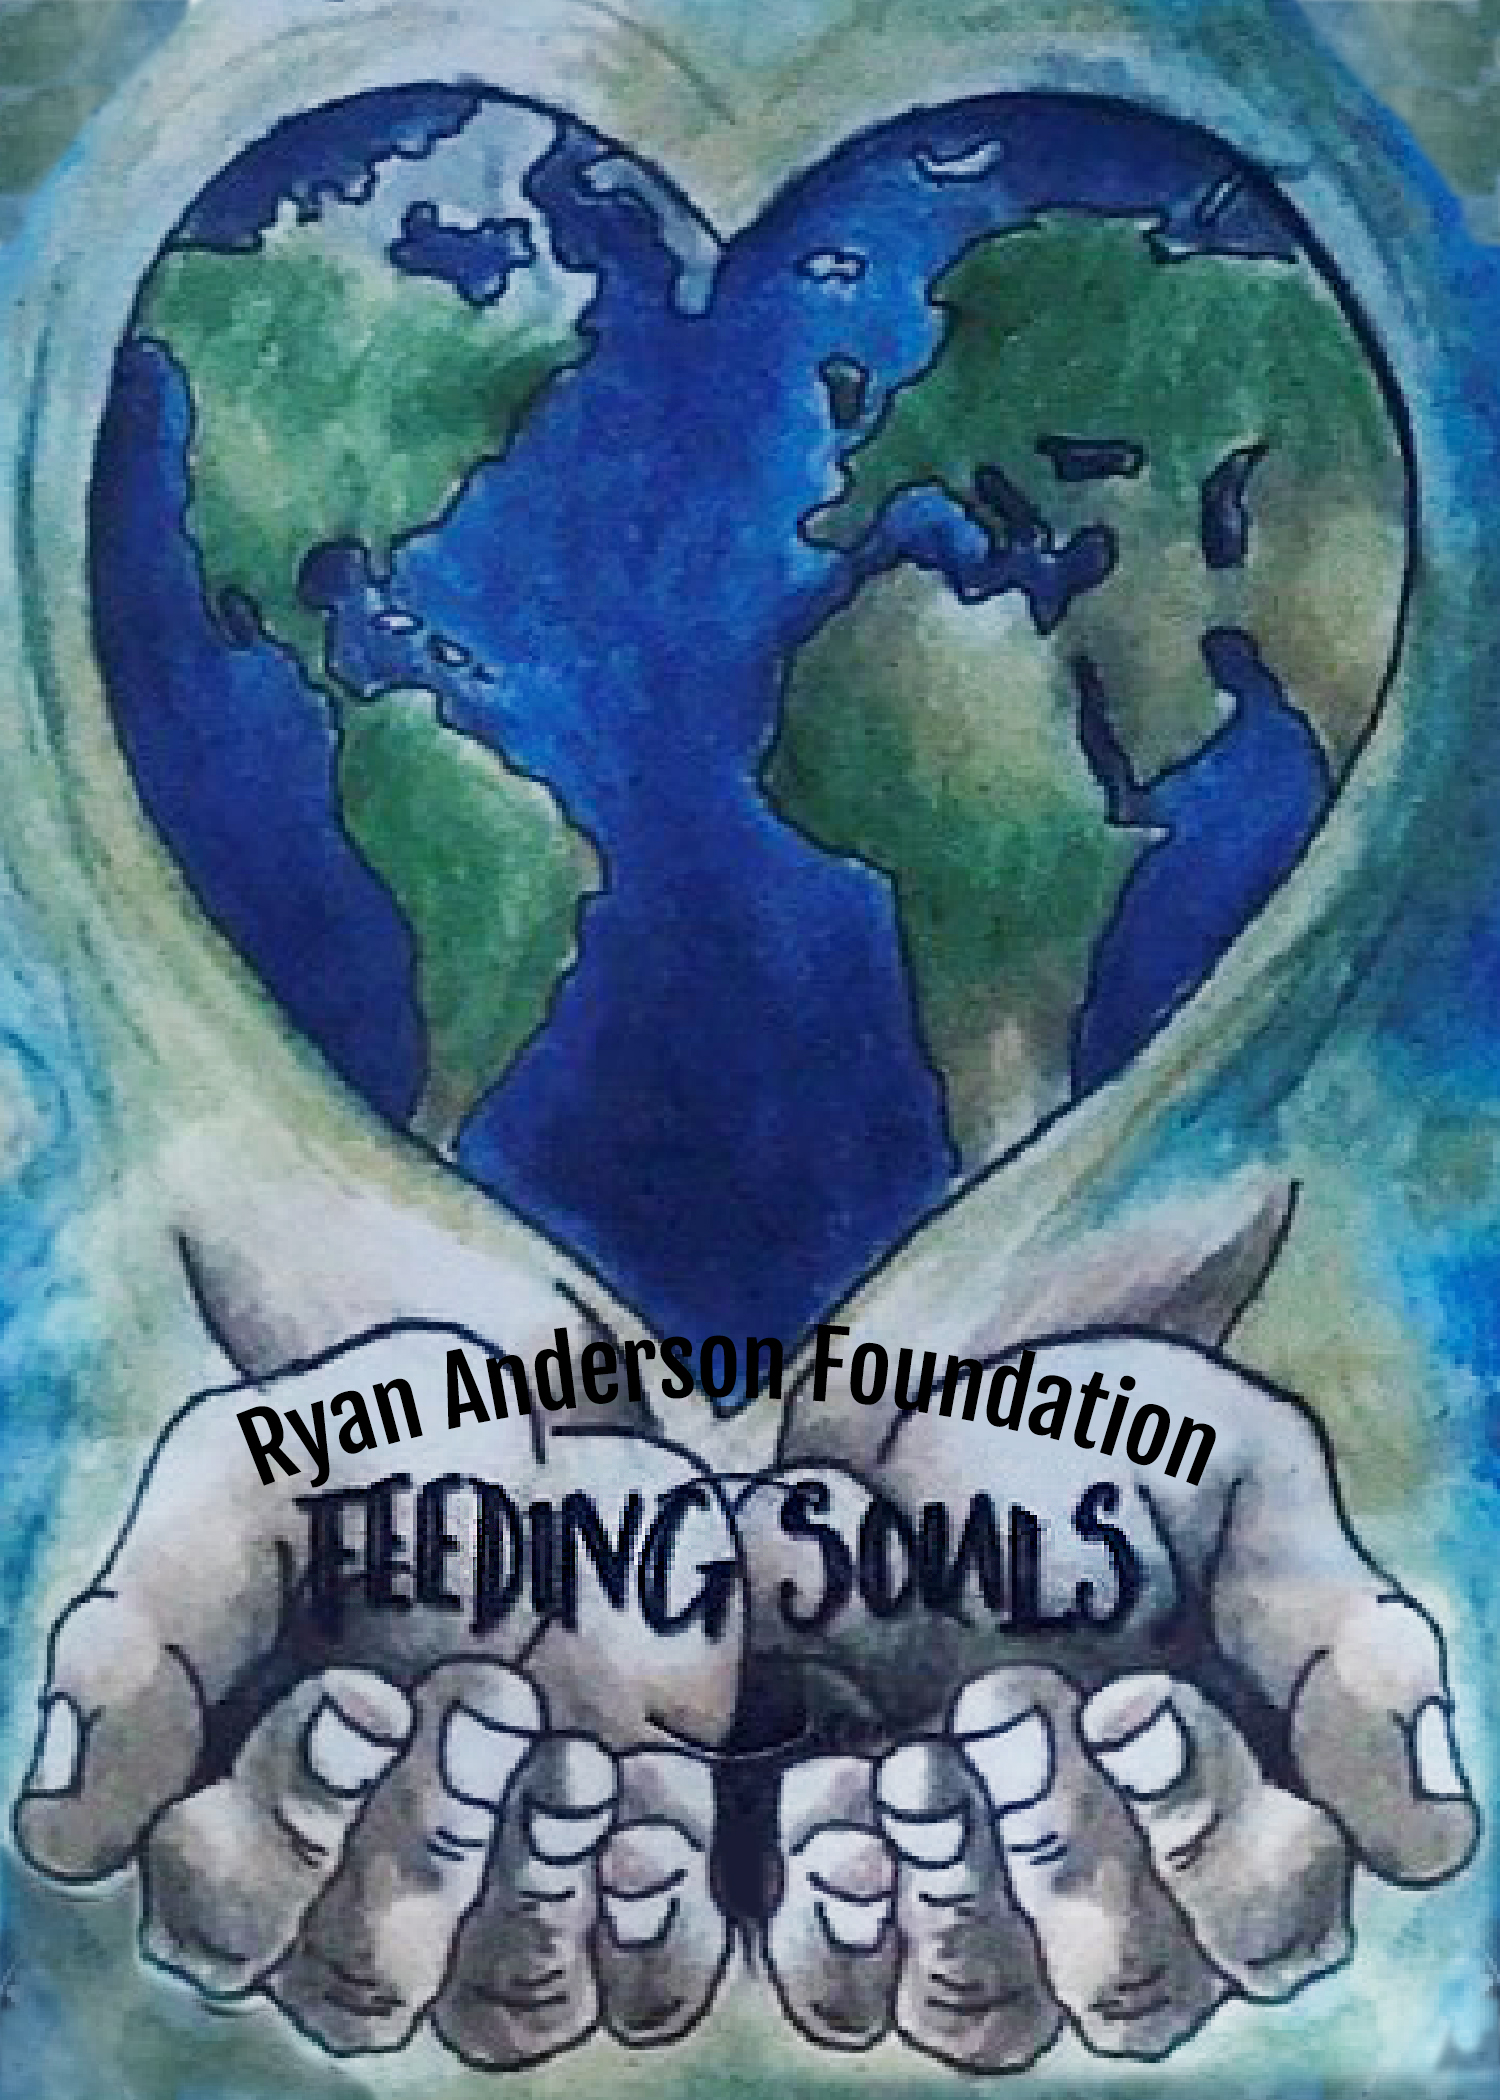 Feeding Souls, Ryan Anderson Foundation